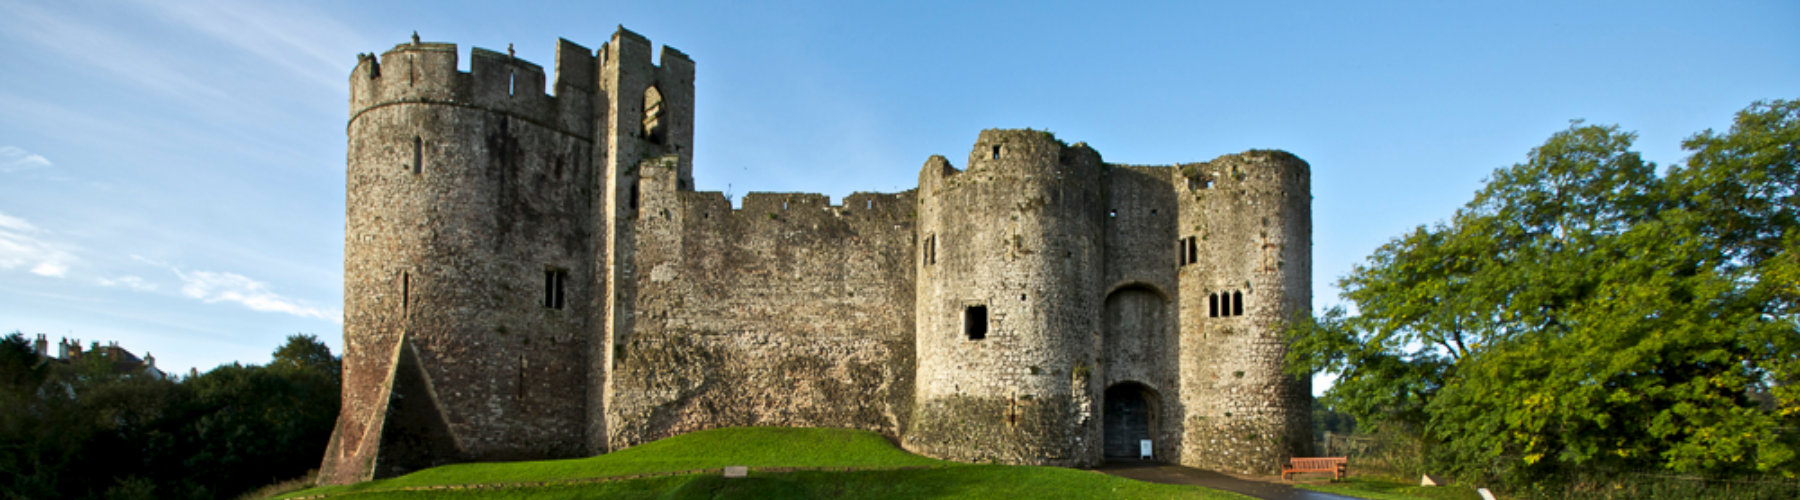 Chepstow Castle Places to Visit Wye Valley Holidays